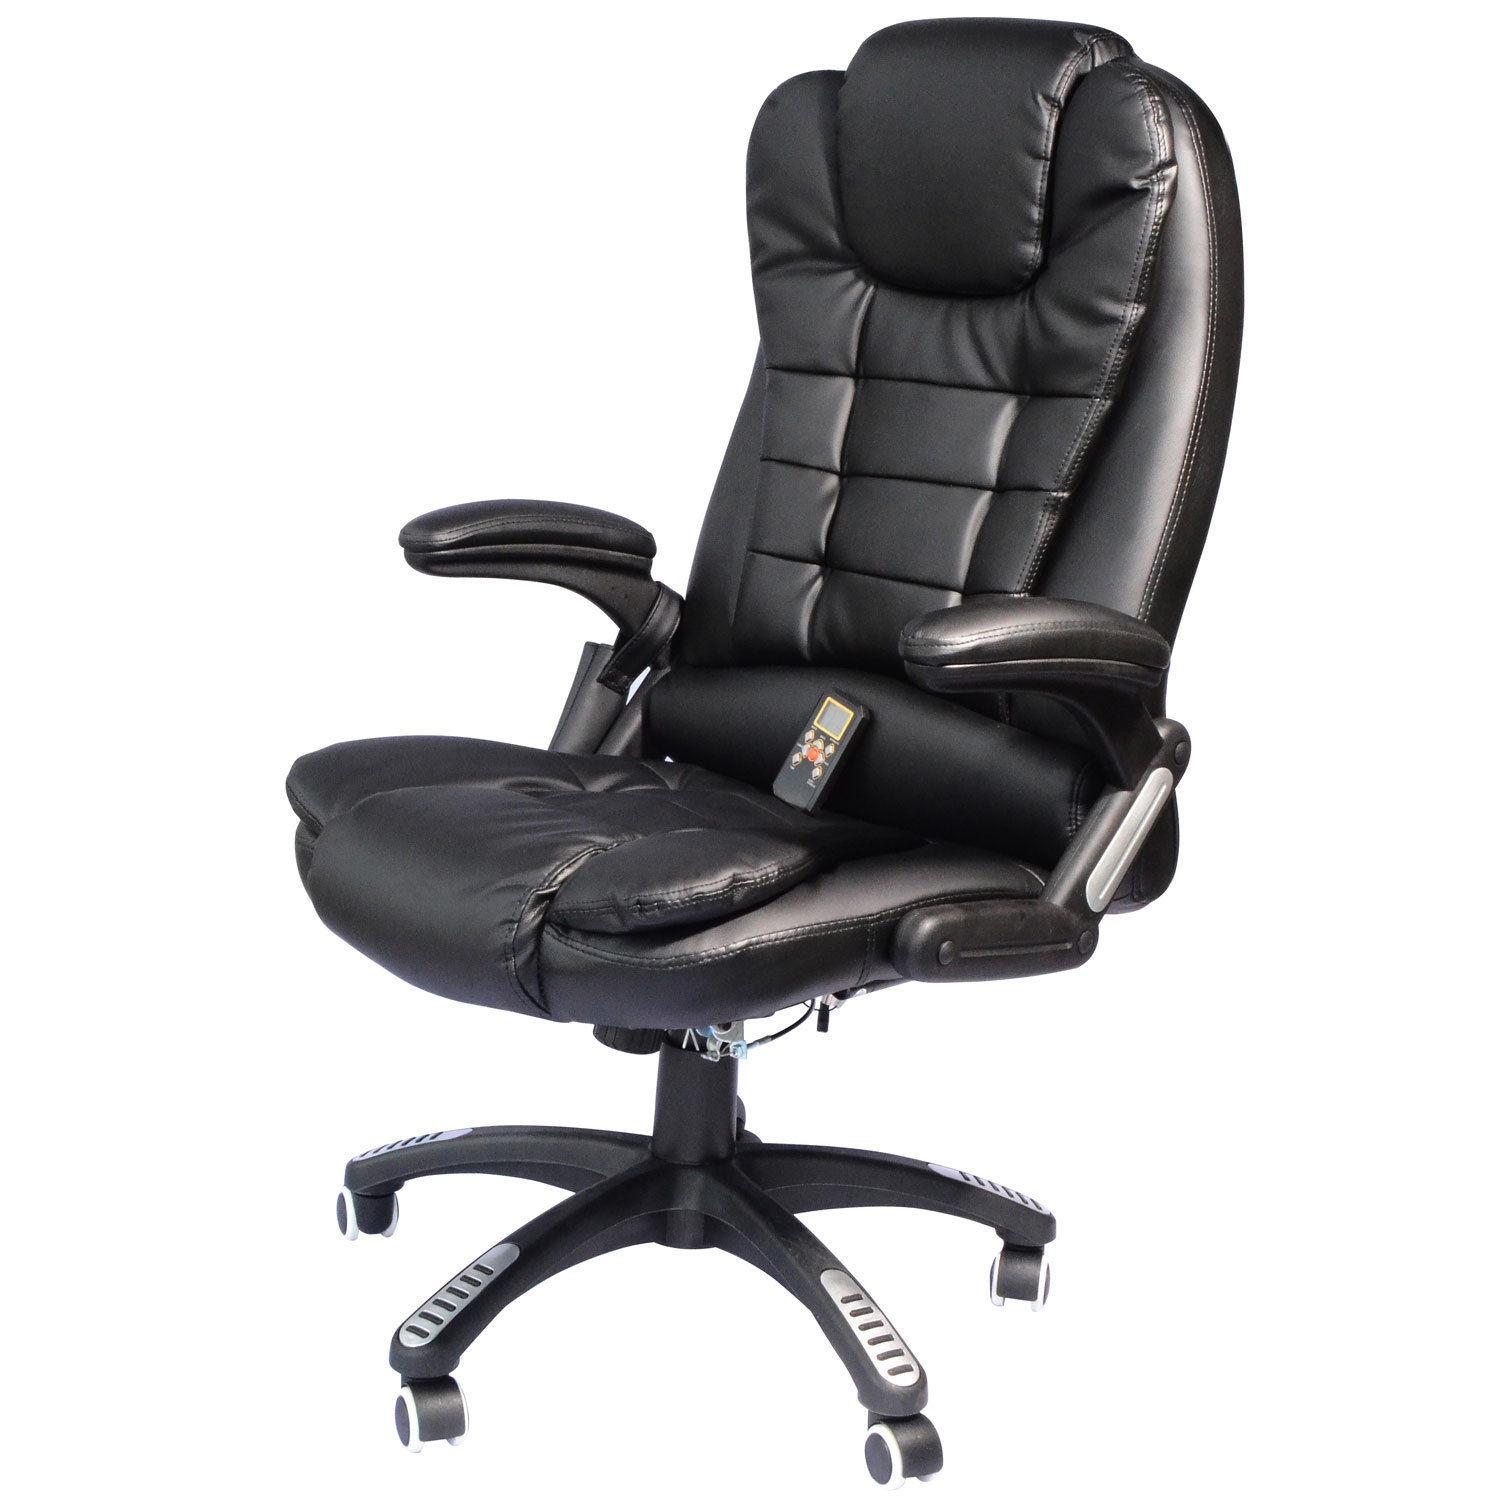 heating massage chair